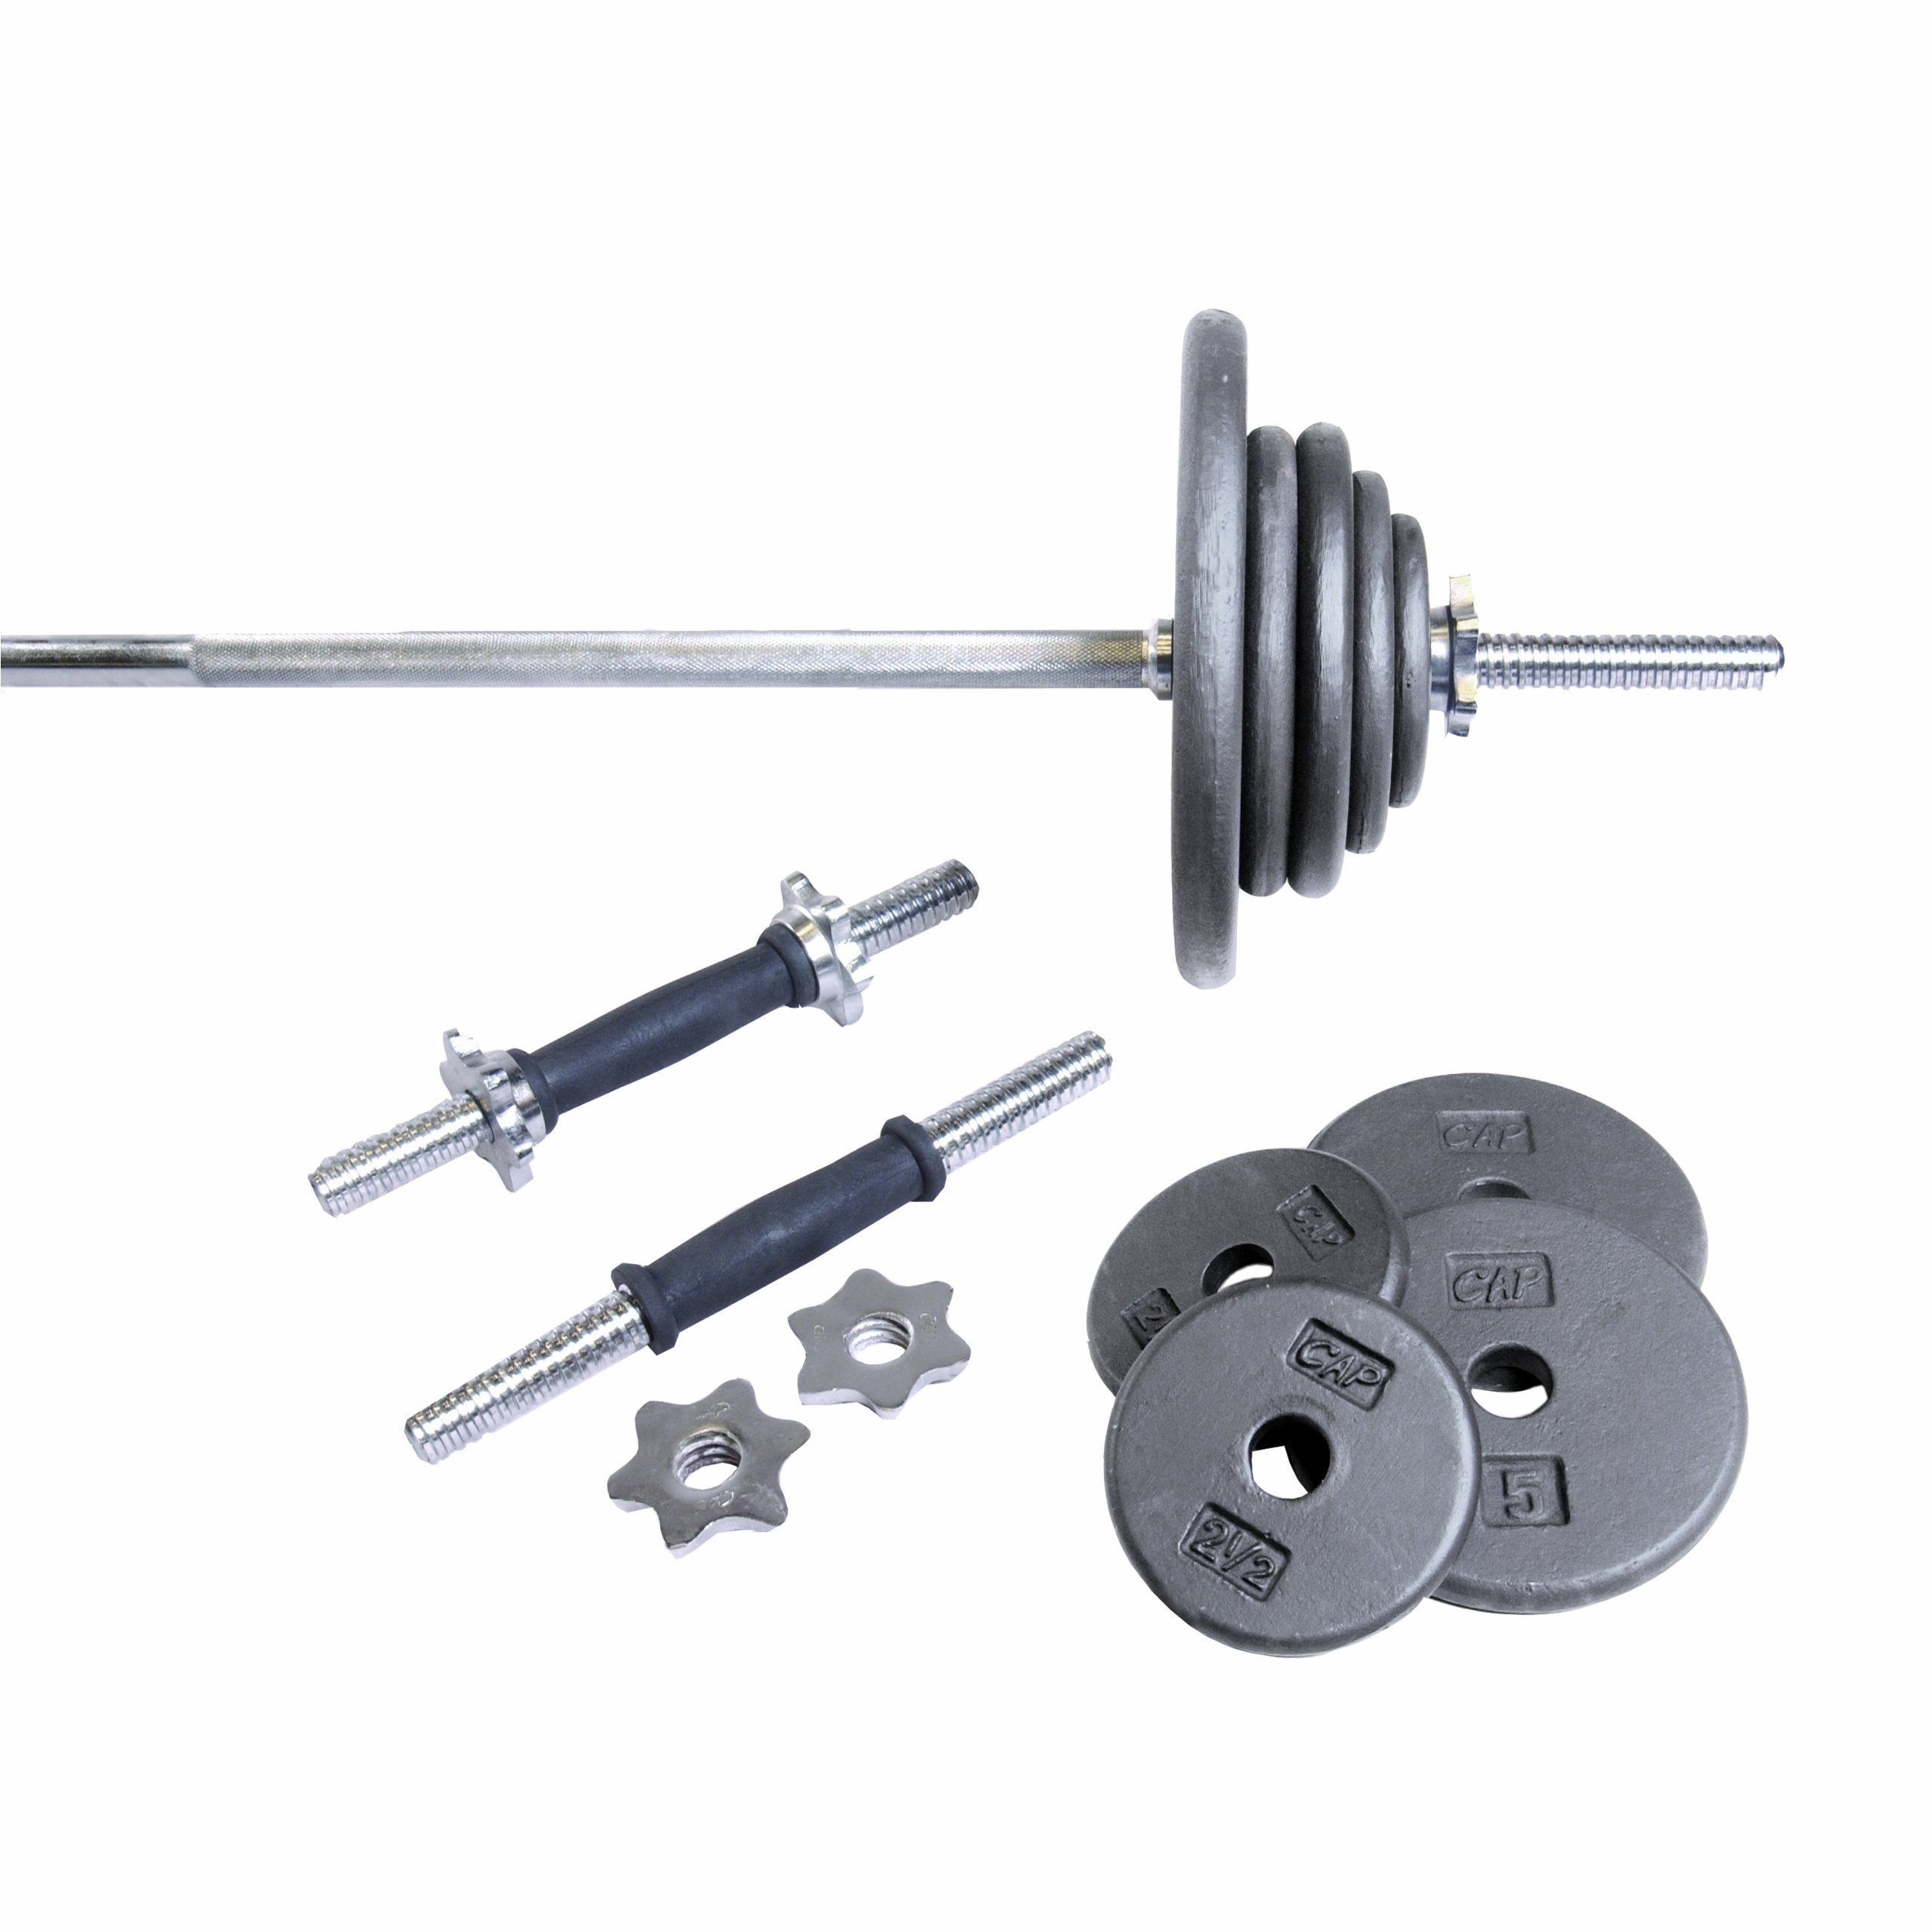 CAP Barbell Regular 110-Pound Weight Set with 5-Feet Threaded Standard Bar (Grey)